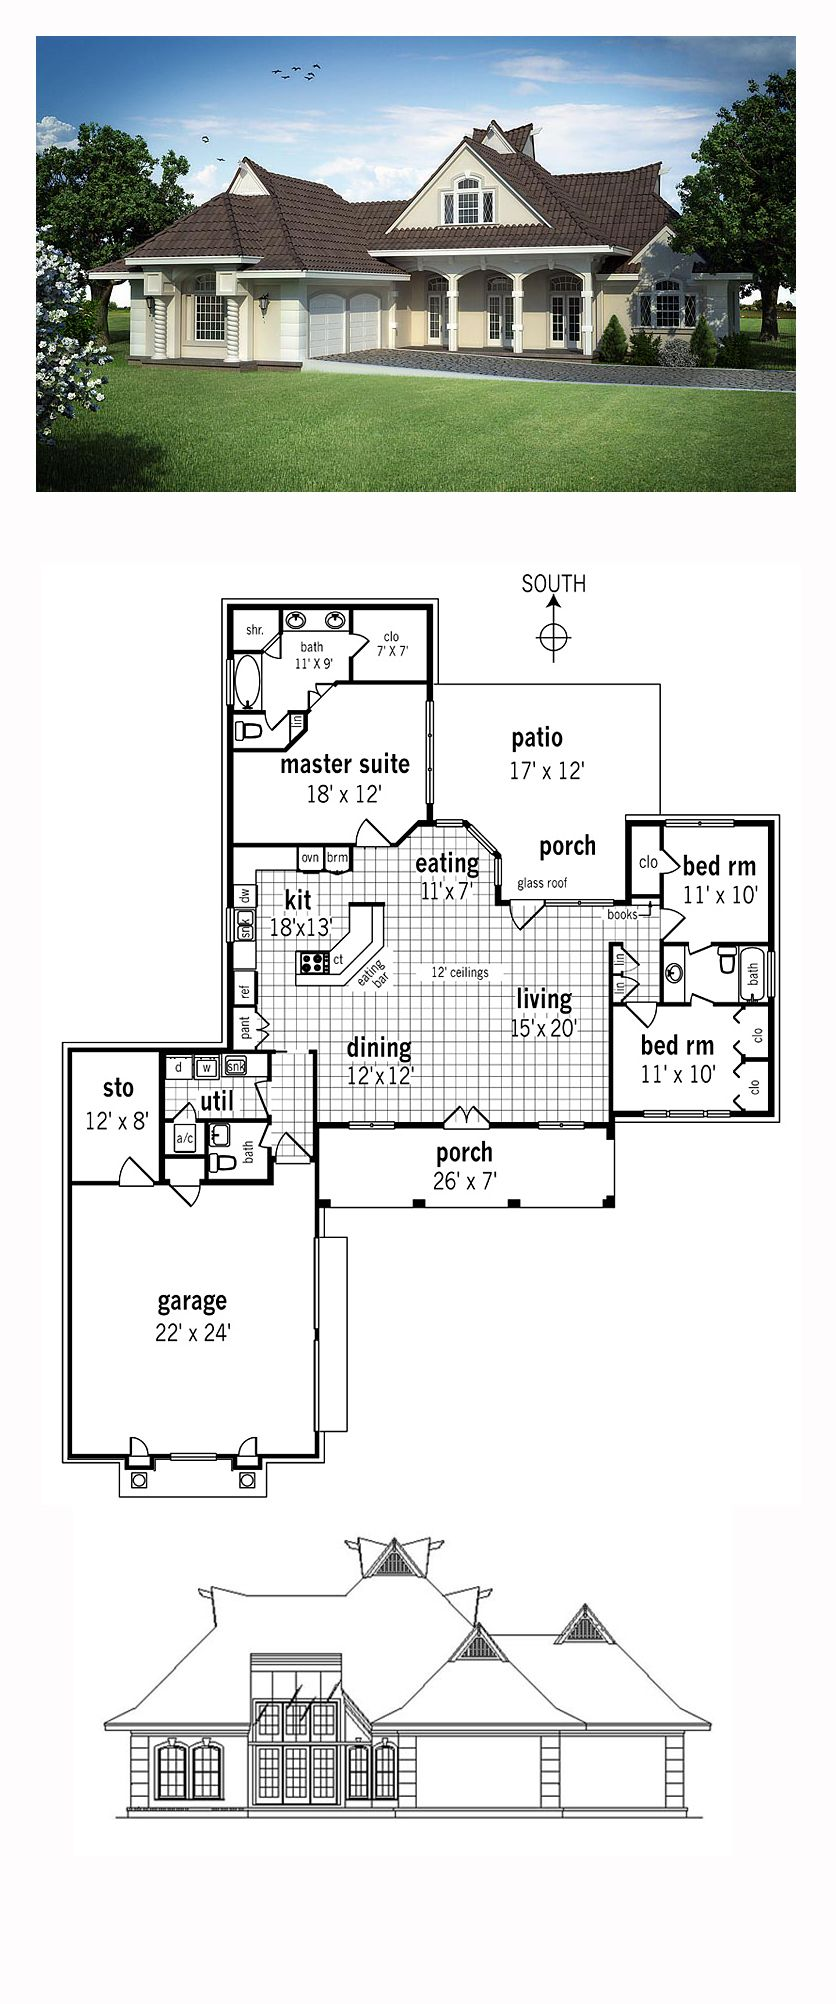 French Country Style House Plan 76911 With 3 Bed 3 Bath 2 Car Garage Country Style House Plans French Country House Plans New House Plans